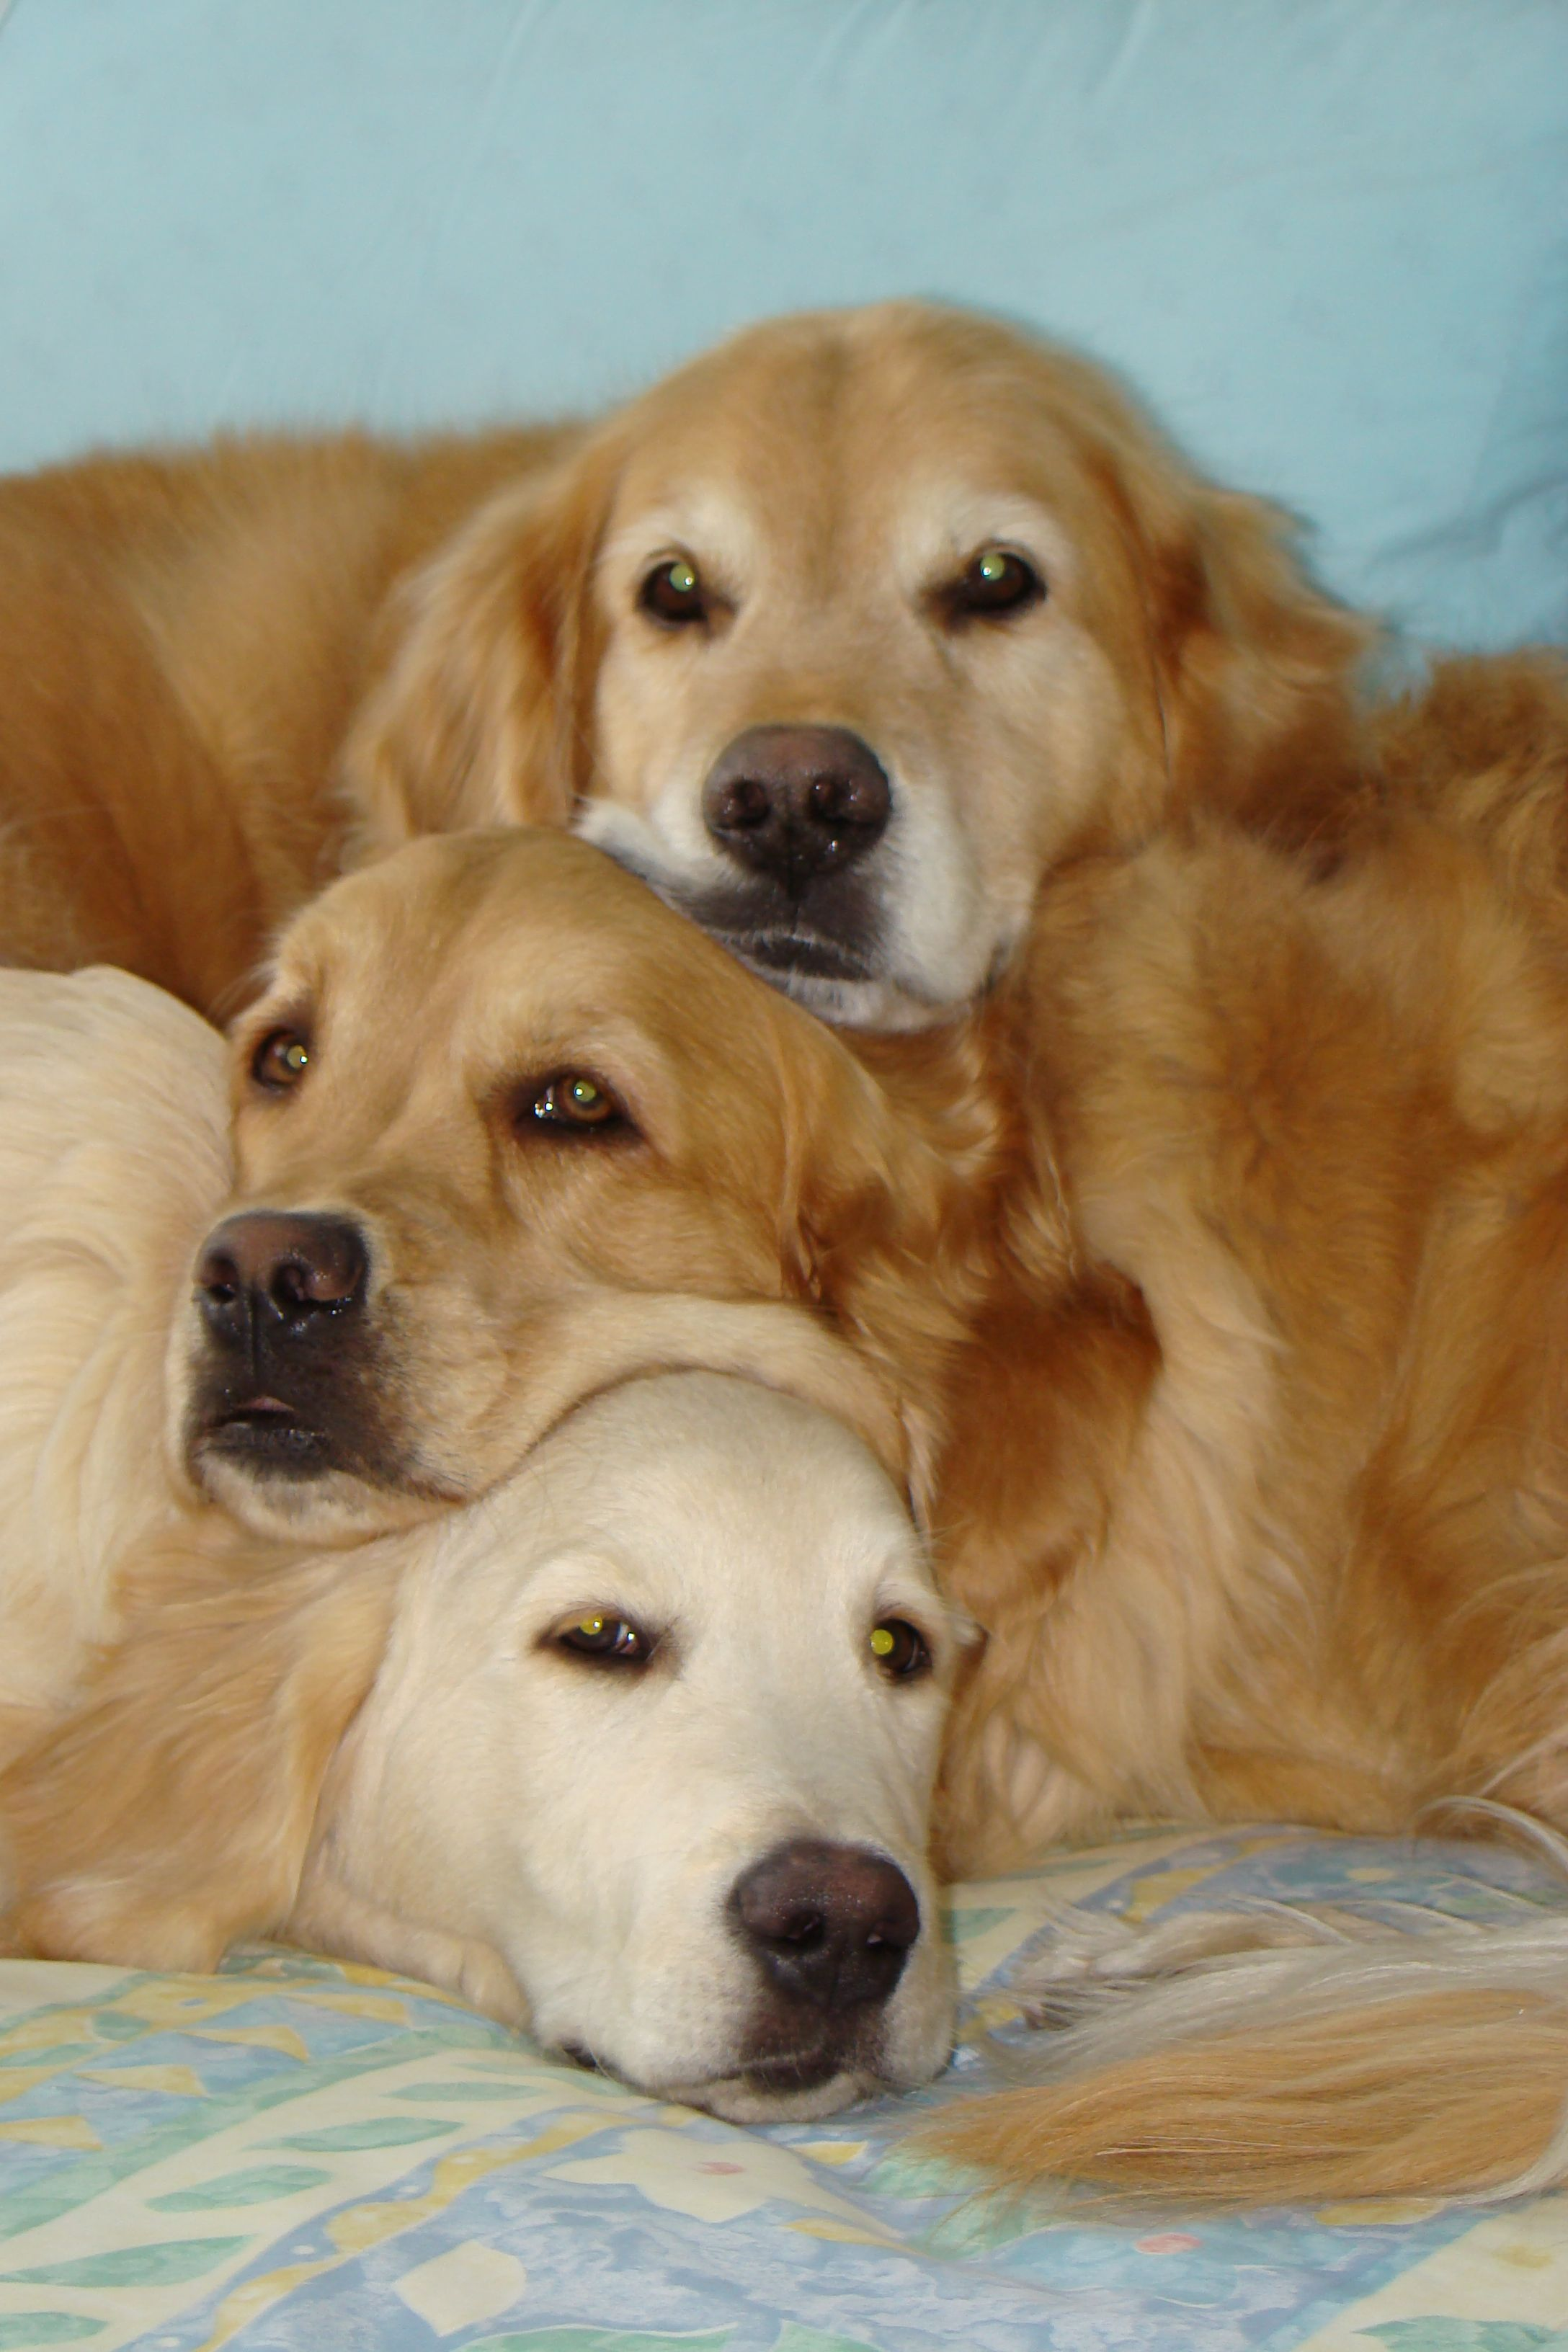 Our Brie Sandwich Tyler Is Whole Wheat Brie Is The Brie Cheese And Bentley Is The White Bread Dogs Golden Retriever Cute Animals Golden Retriever